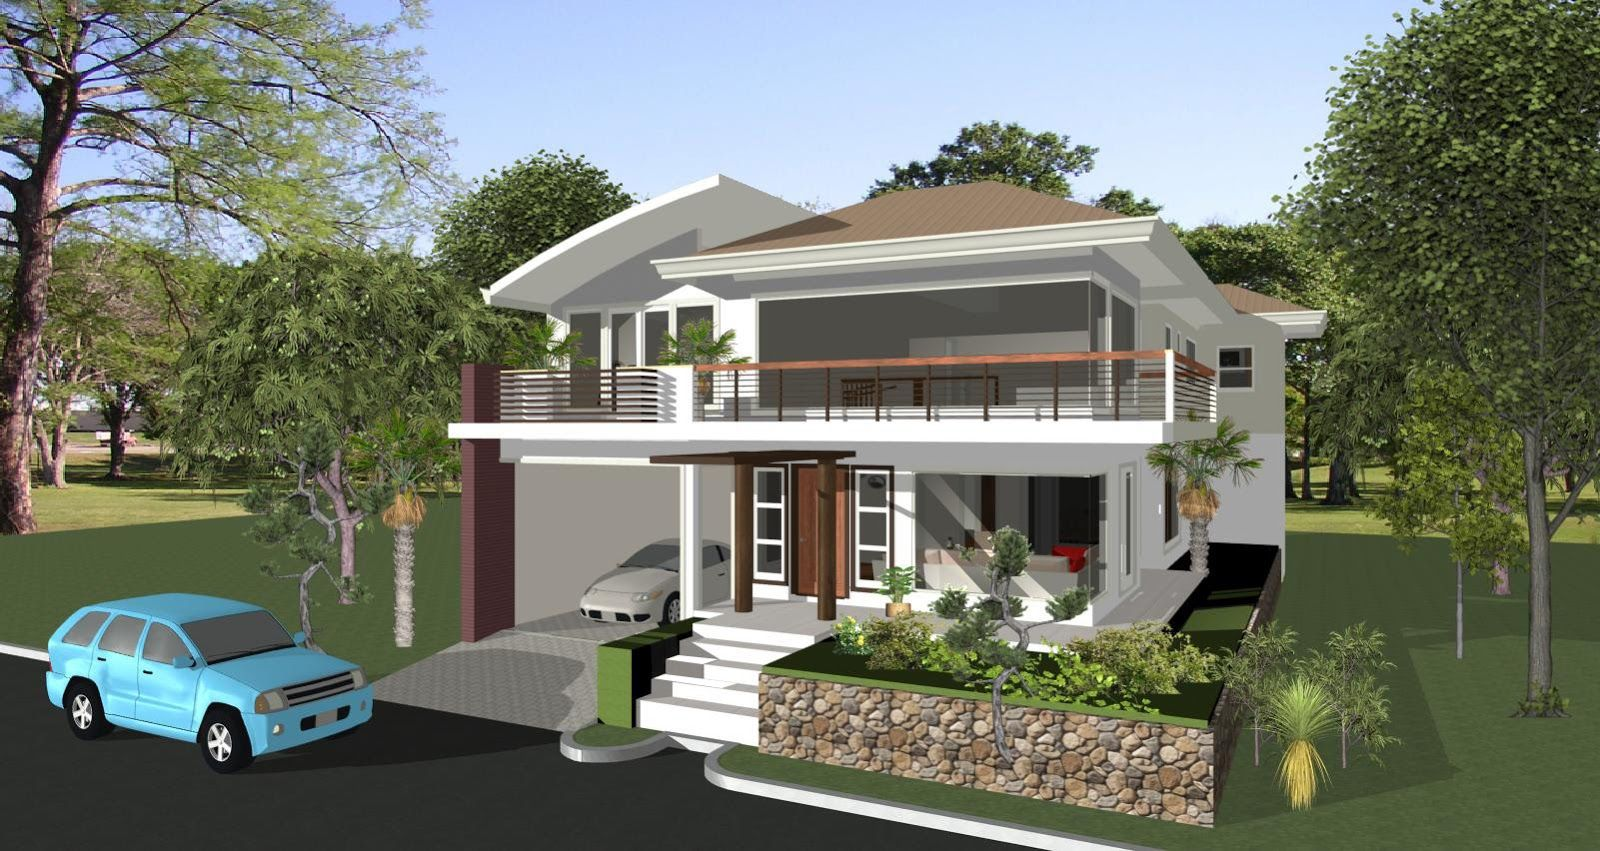 House Design Iloilo Philippine Home Philippines